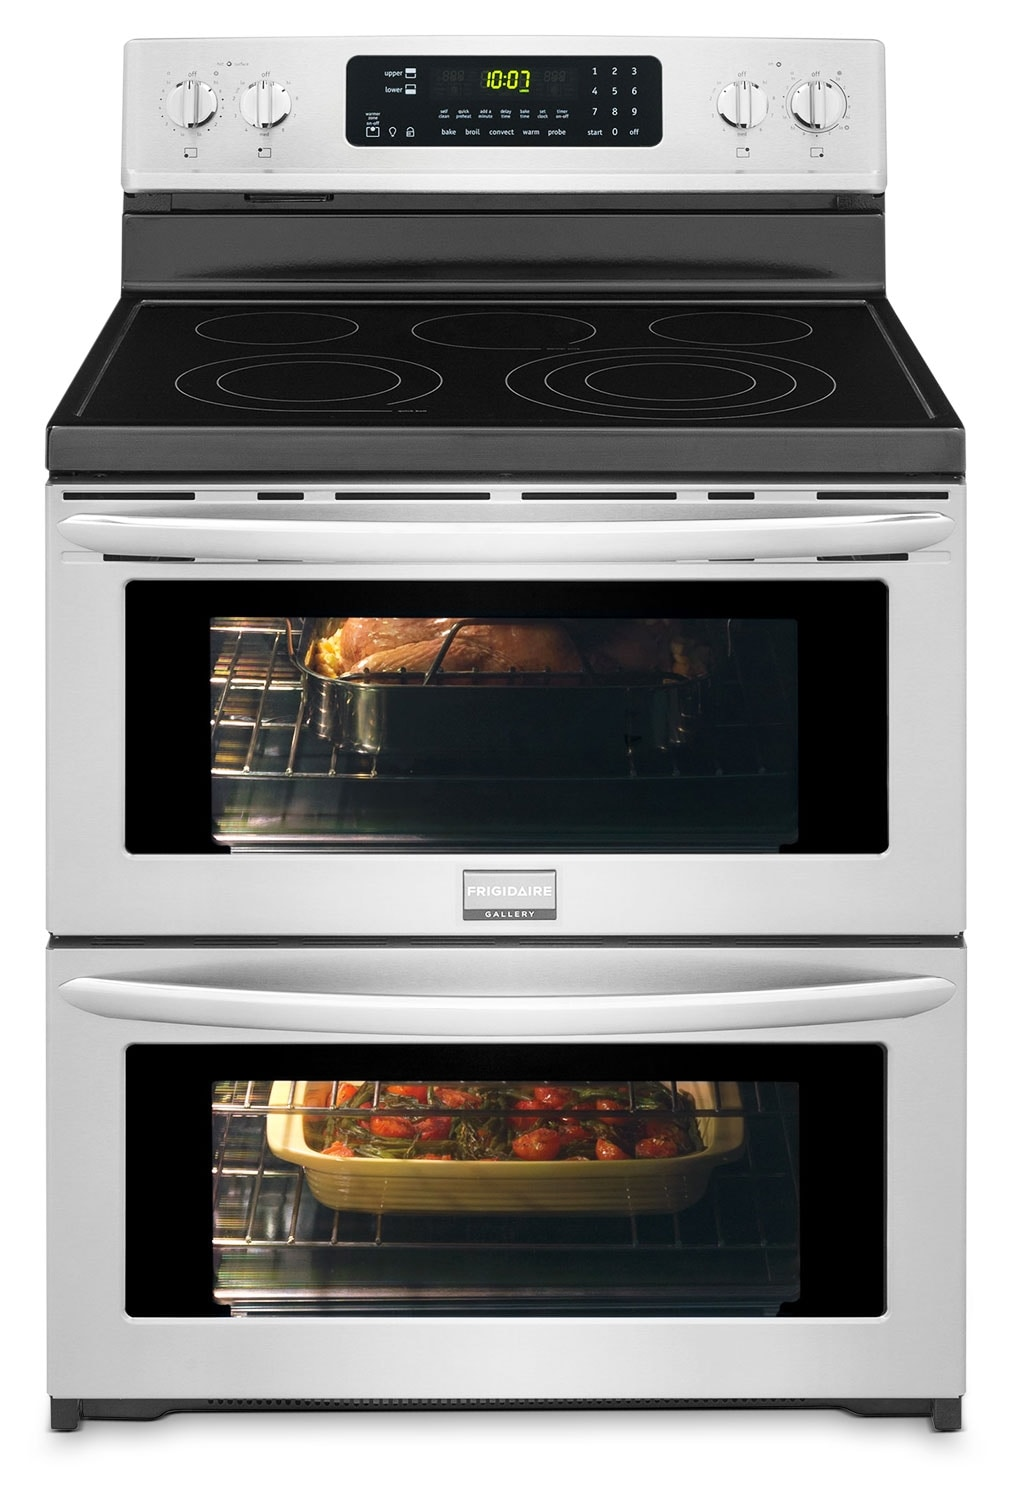 Cooking Products - Frigidaire Gallery Stainless Steel Freestanding Electric Double Oven (7.2 Cu. Ft.) - CGEF306TPF